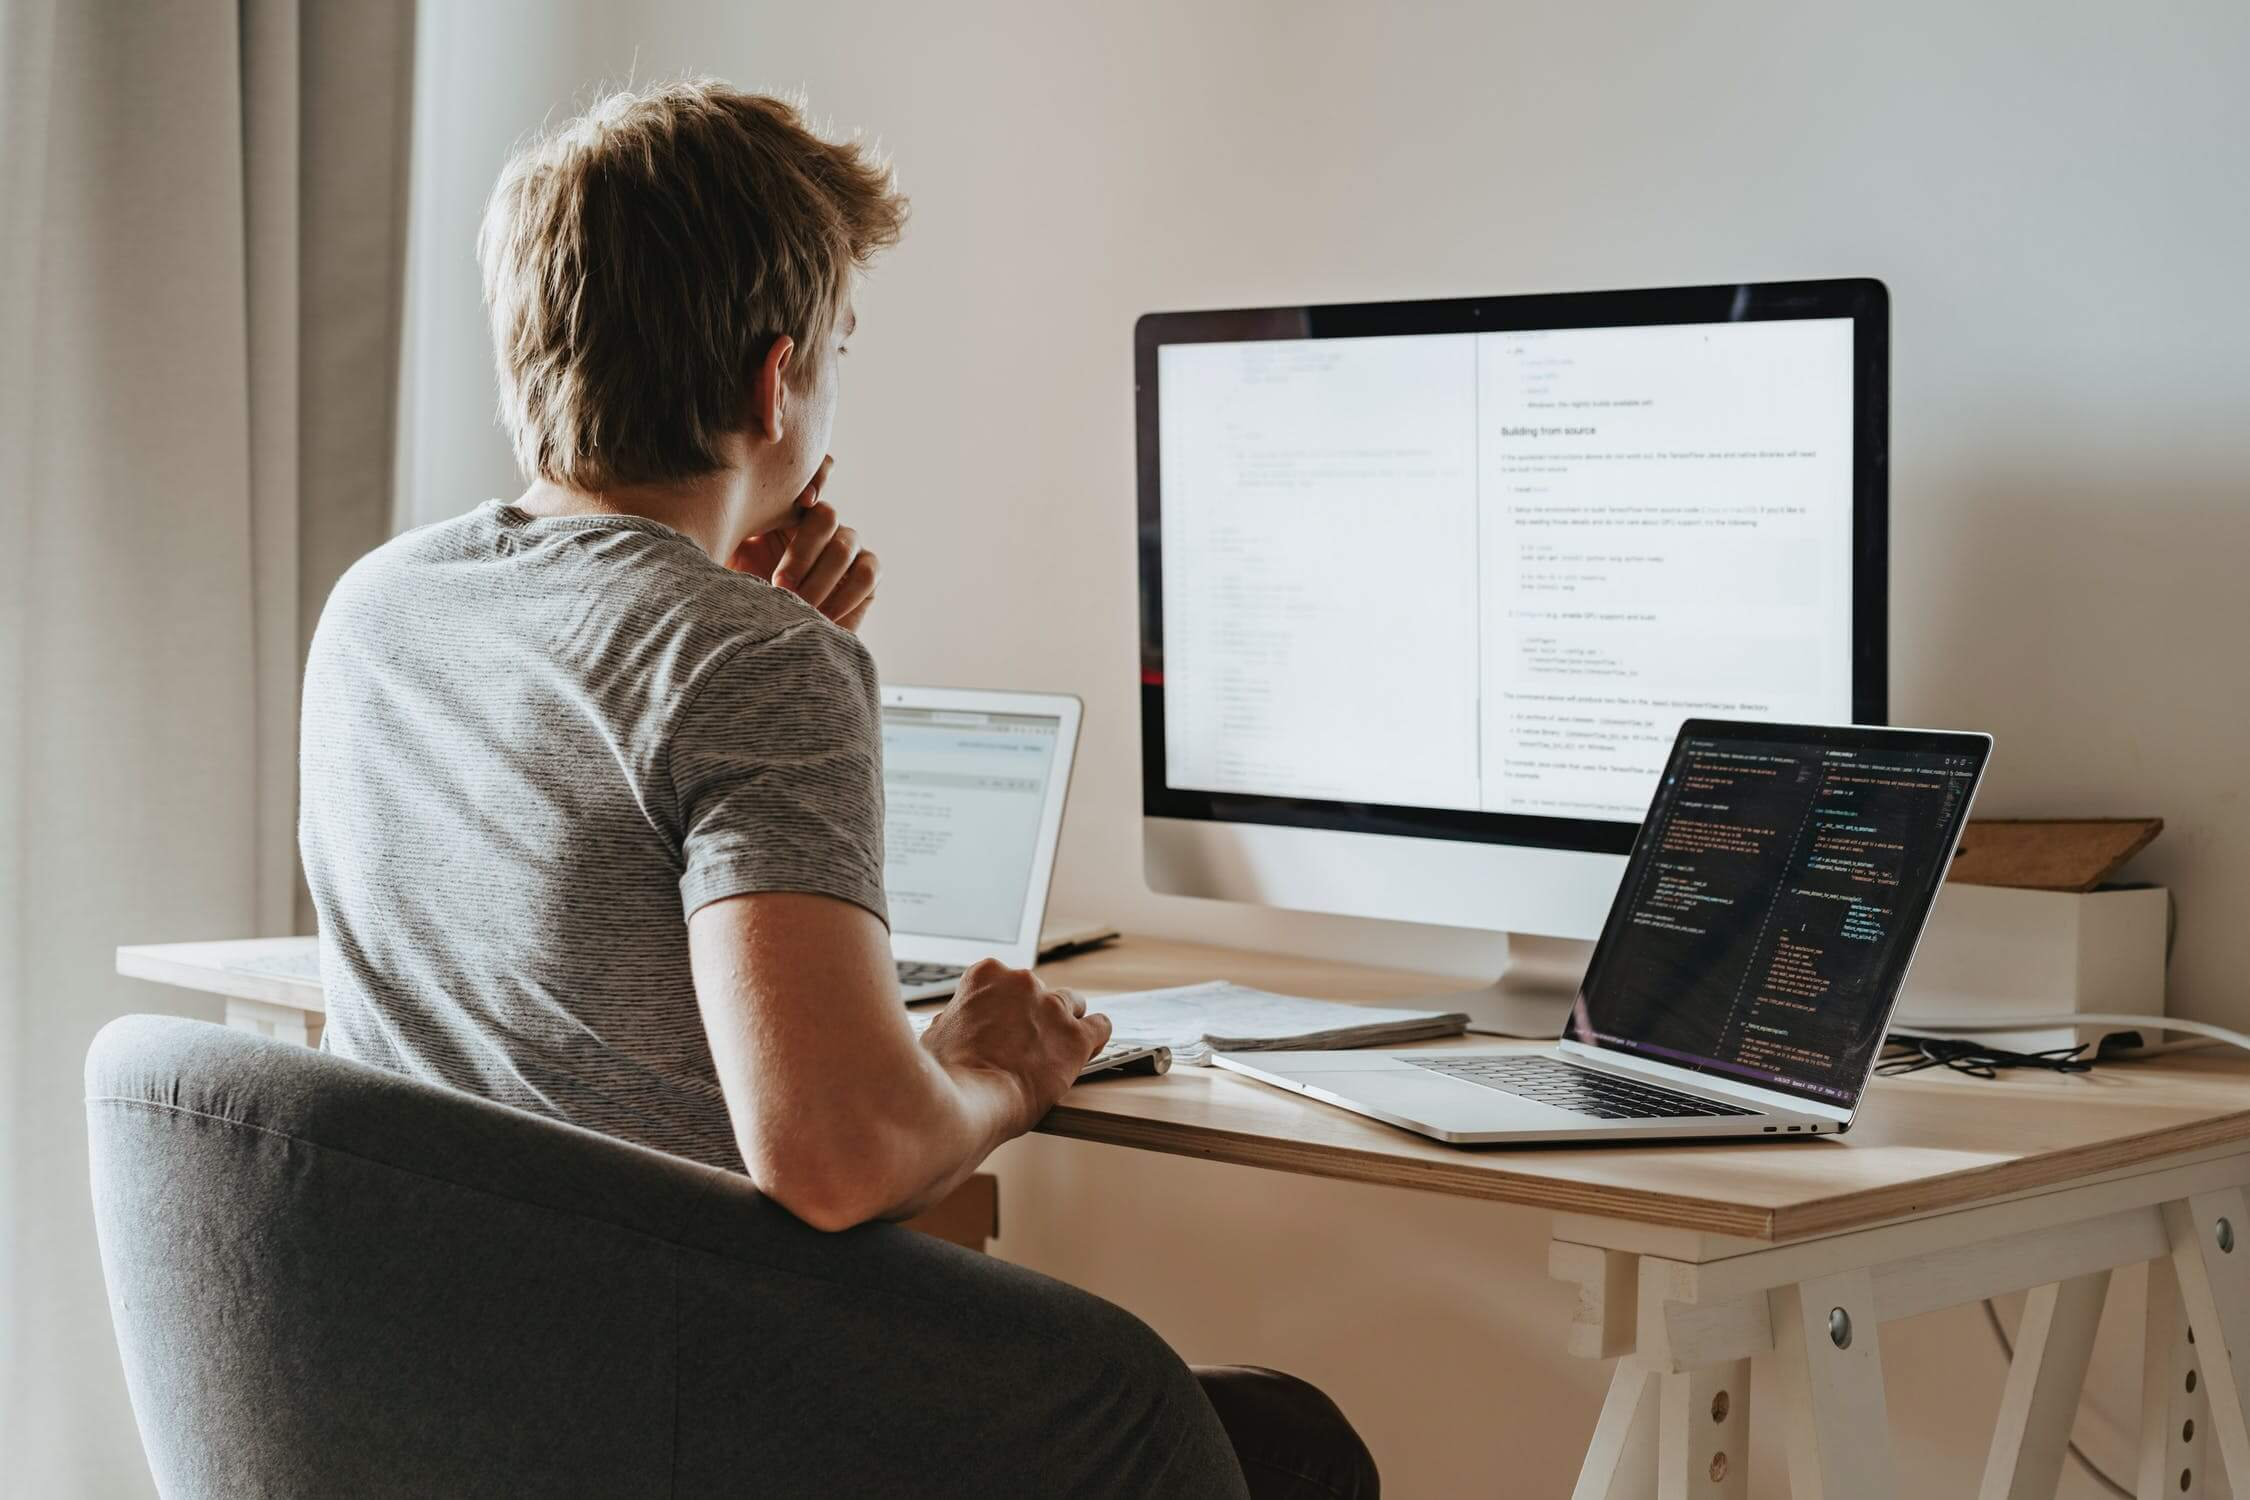 How to write better code using DRY and Do One Thing